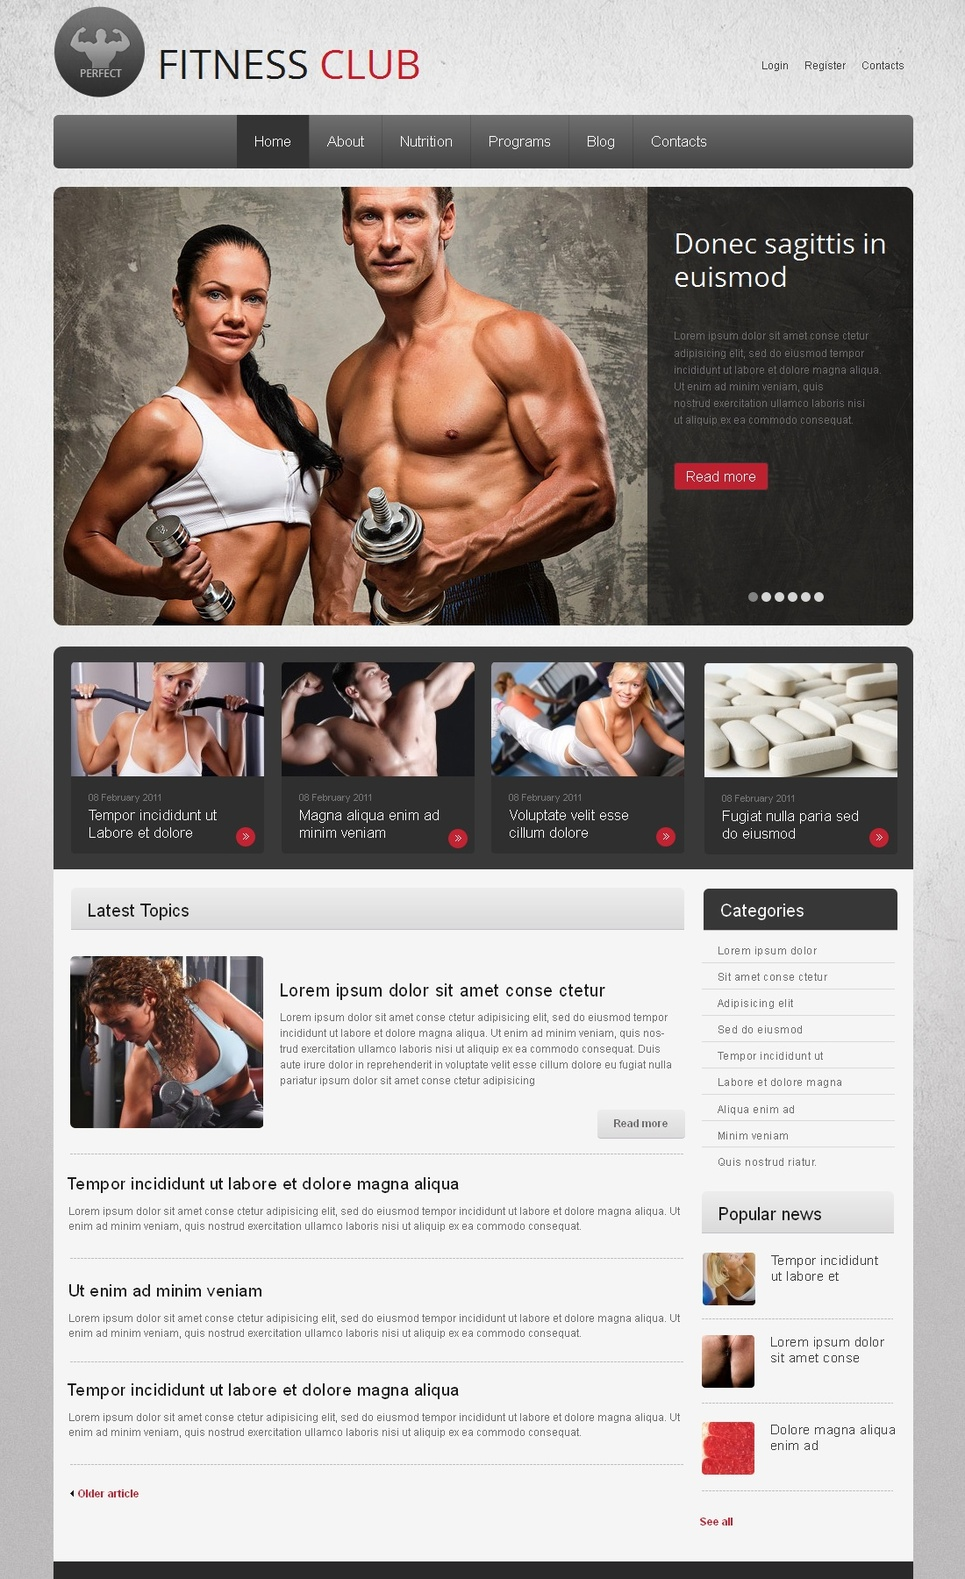 Fitness Club Website Template Designed In Gray Tones - image